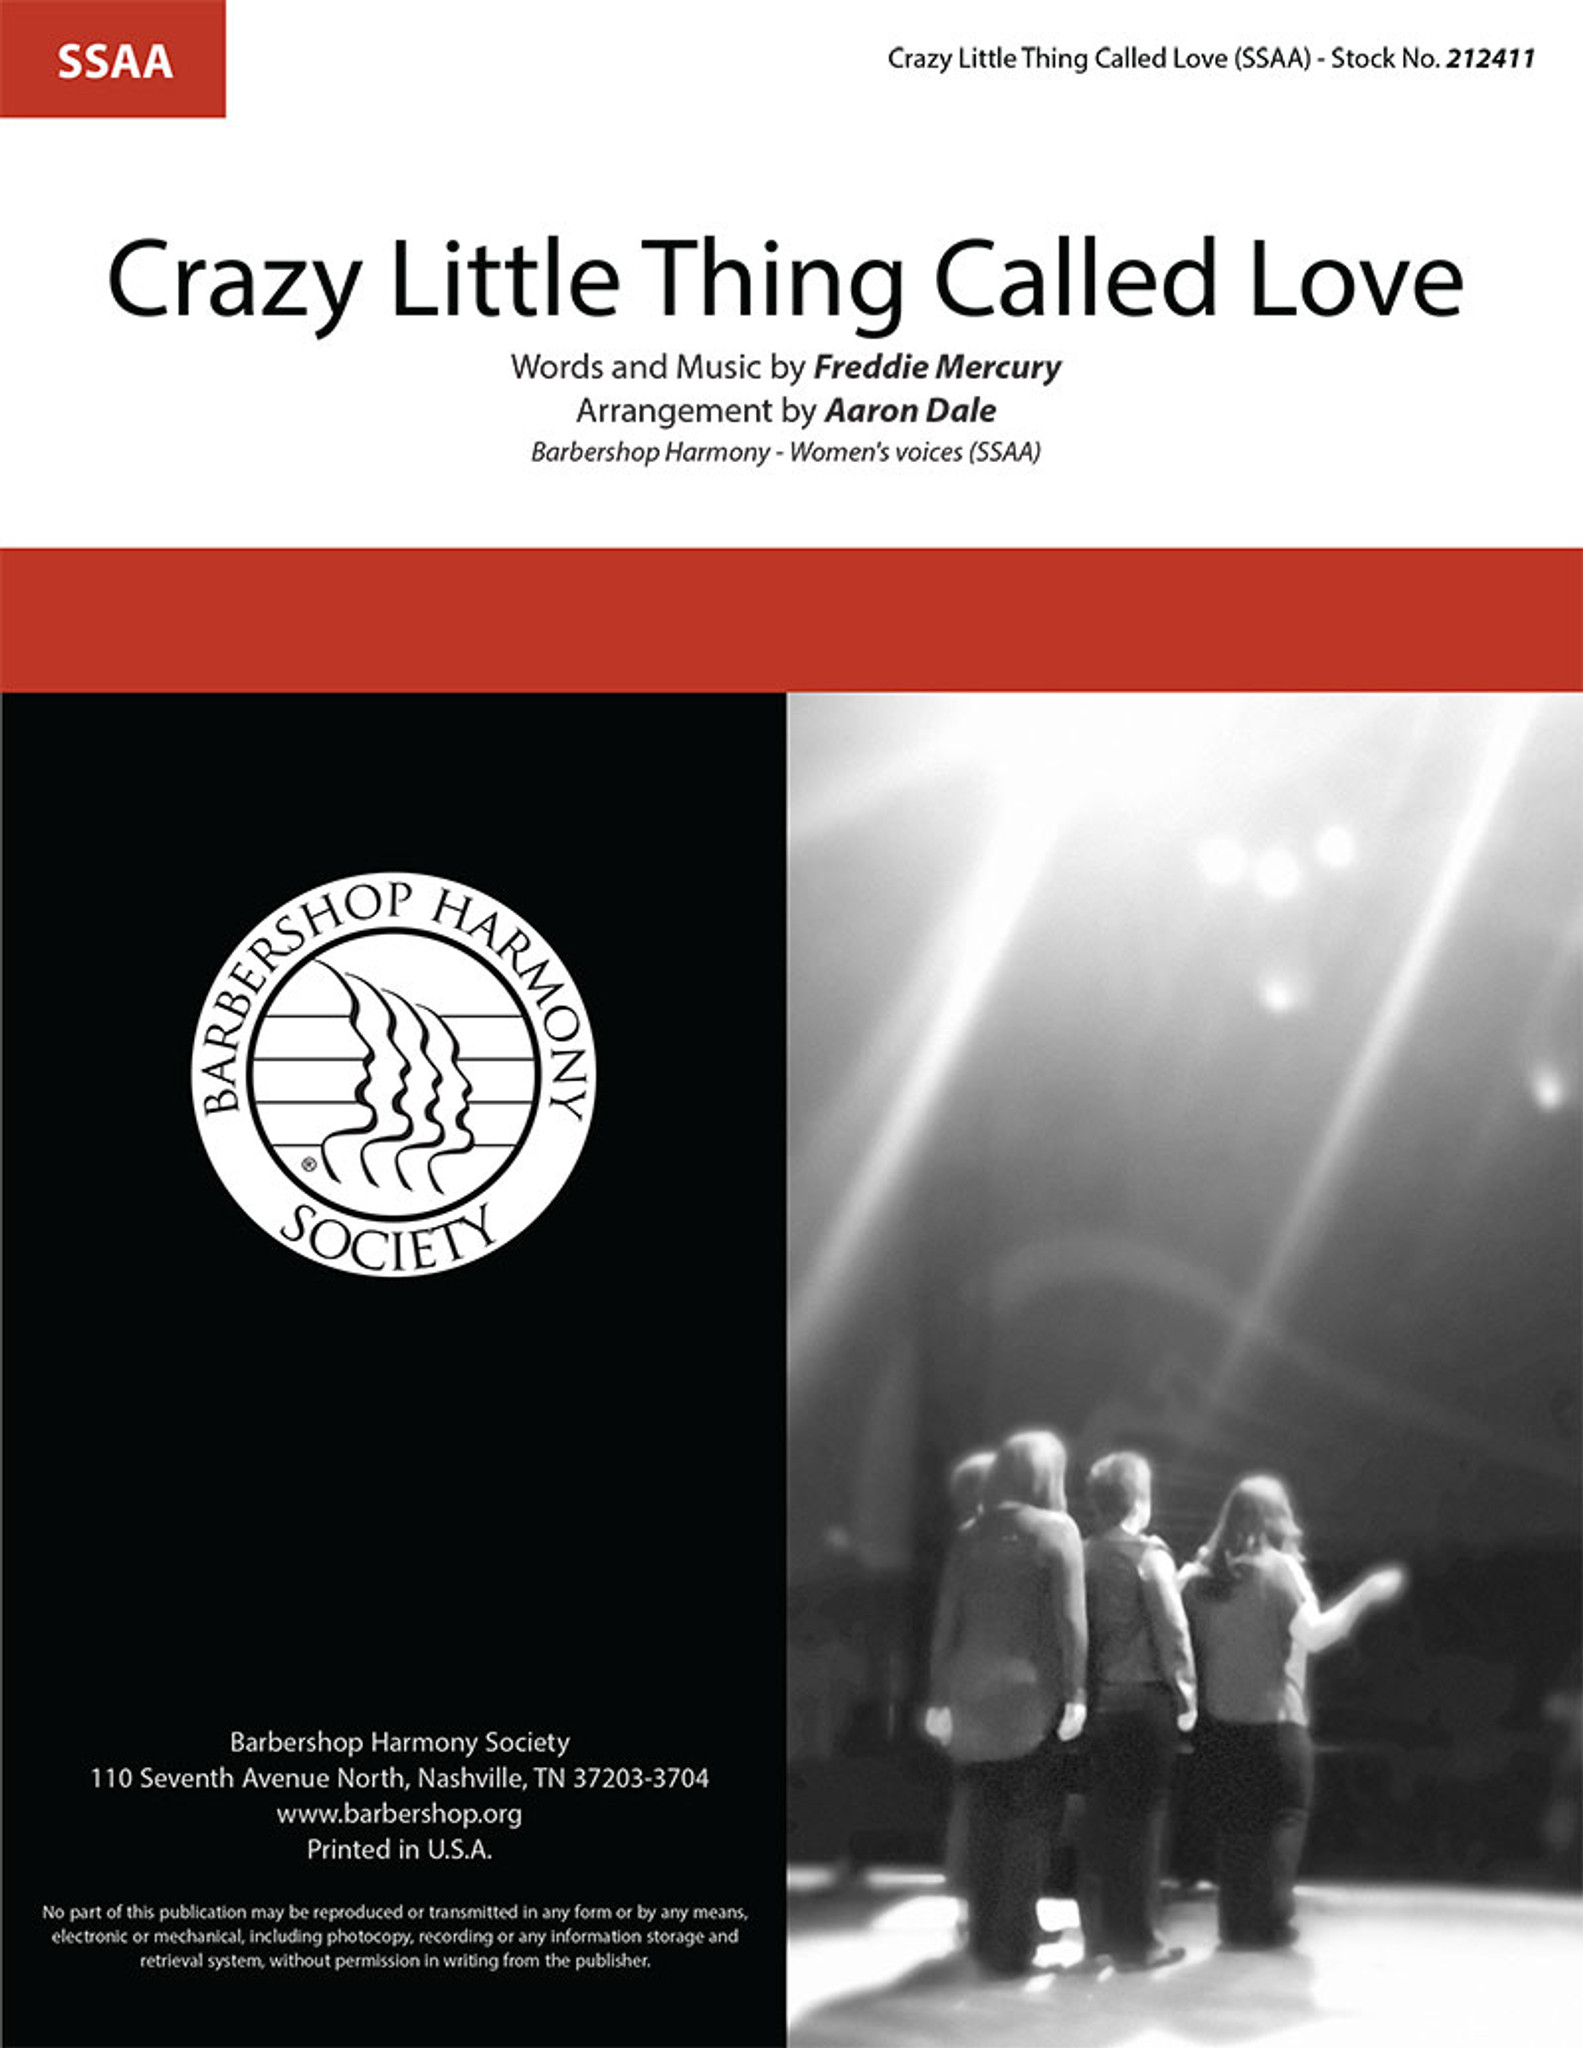 Free download thailand movie crazy little thing called love sub.